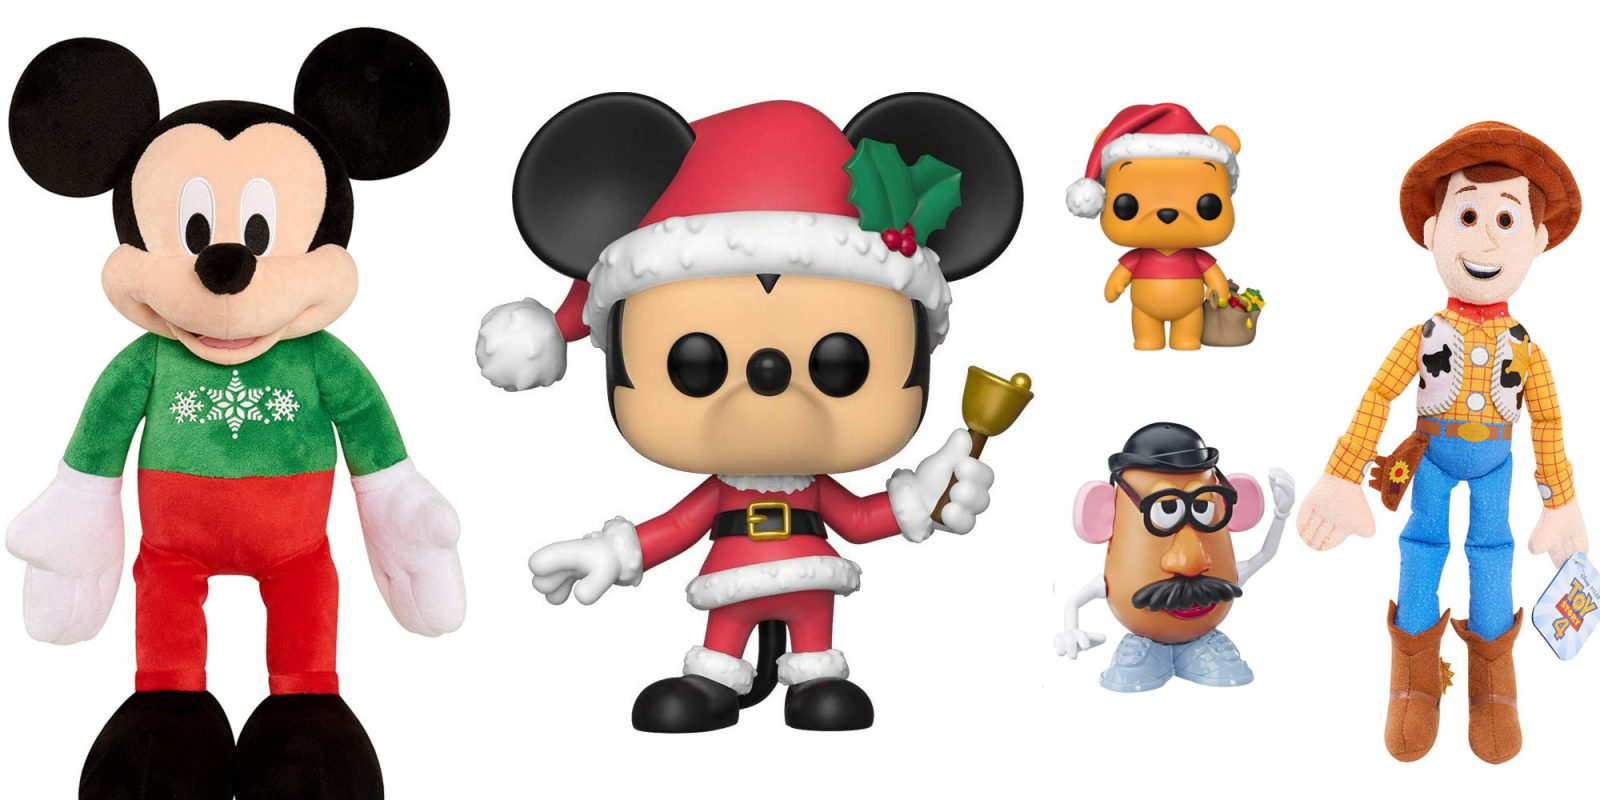 Disney holiday toys, apparel, more from $3.50 at Amazon (Up to 30% off)